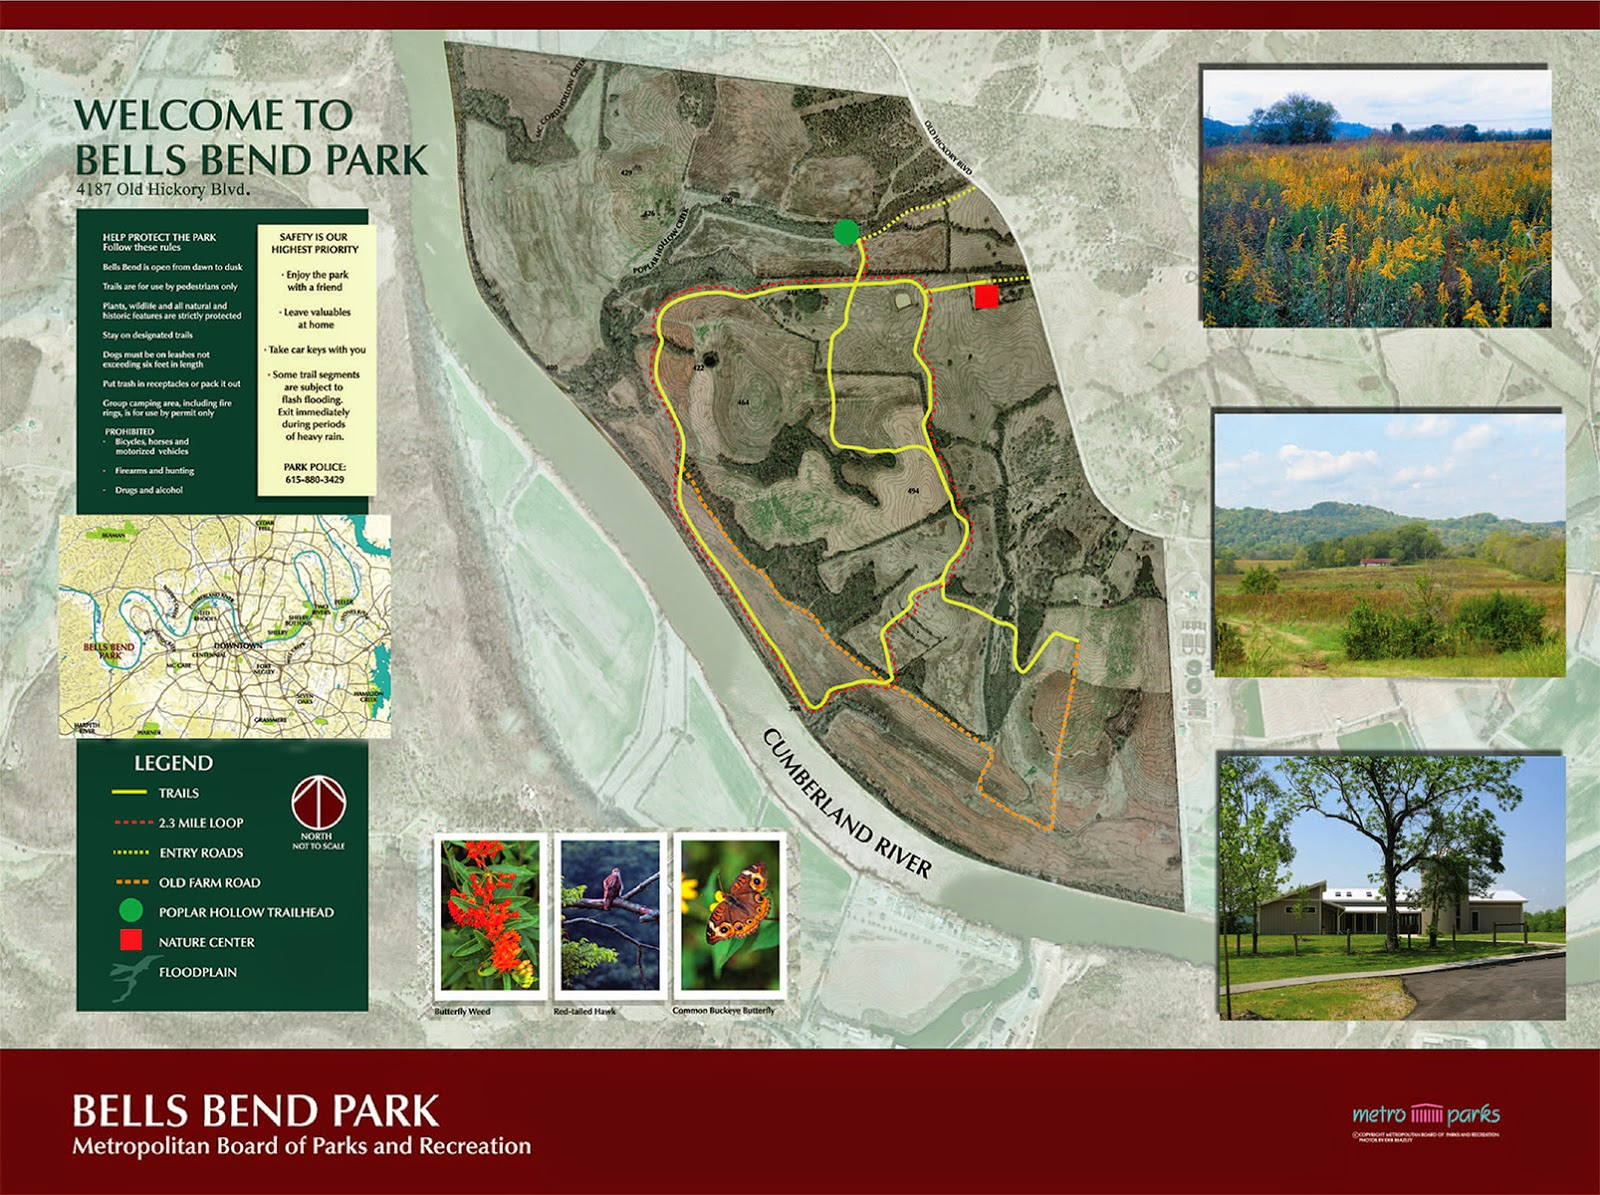 Map of Bells Bend Park in Nashville, TN